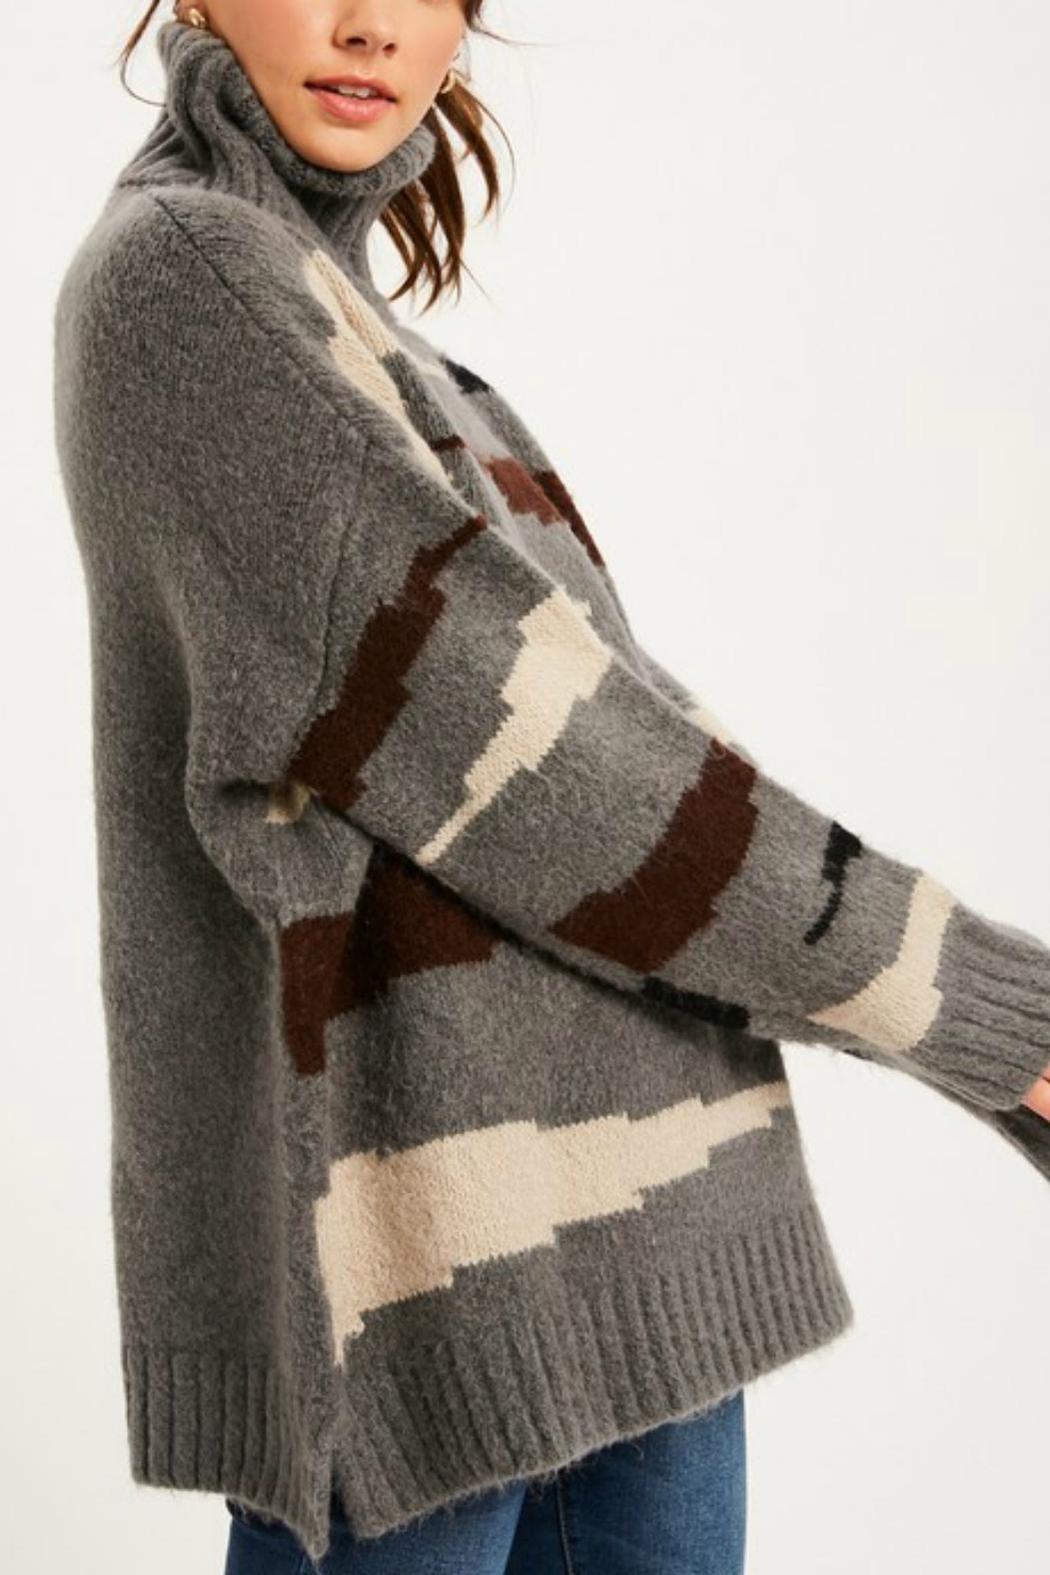 Pretty Little Things Western Turtkeneck Sweater - Front Full Image